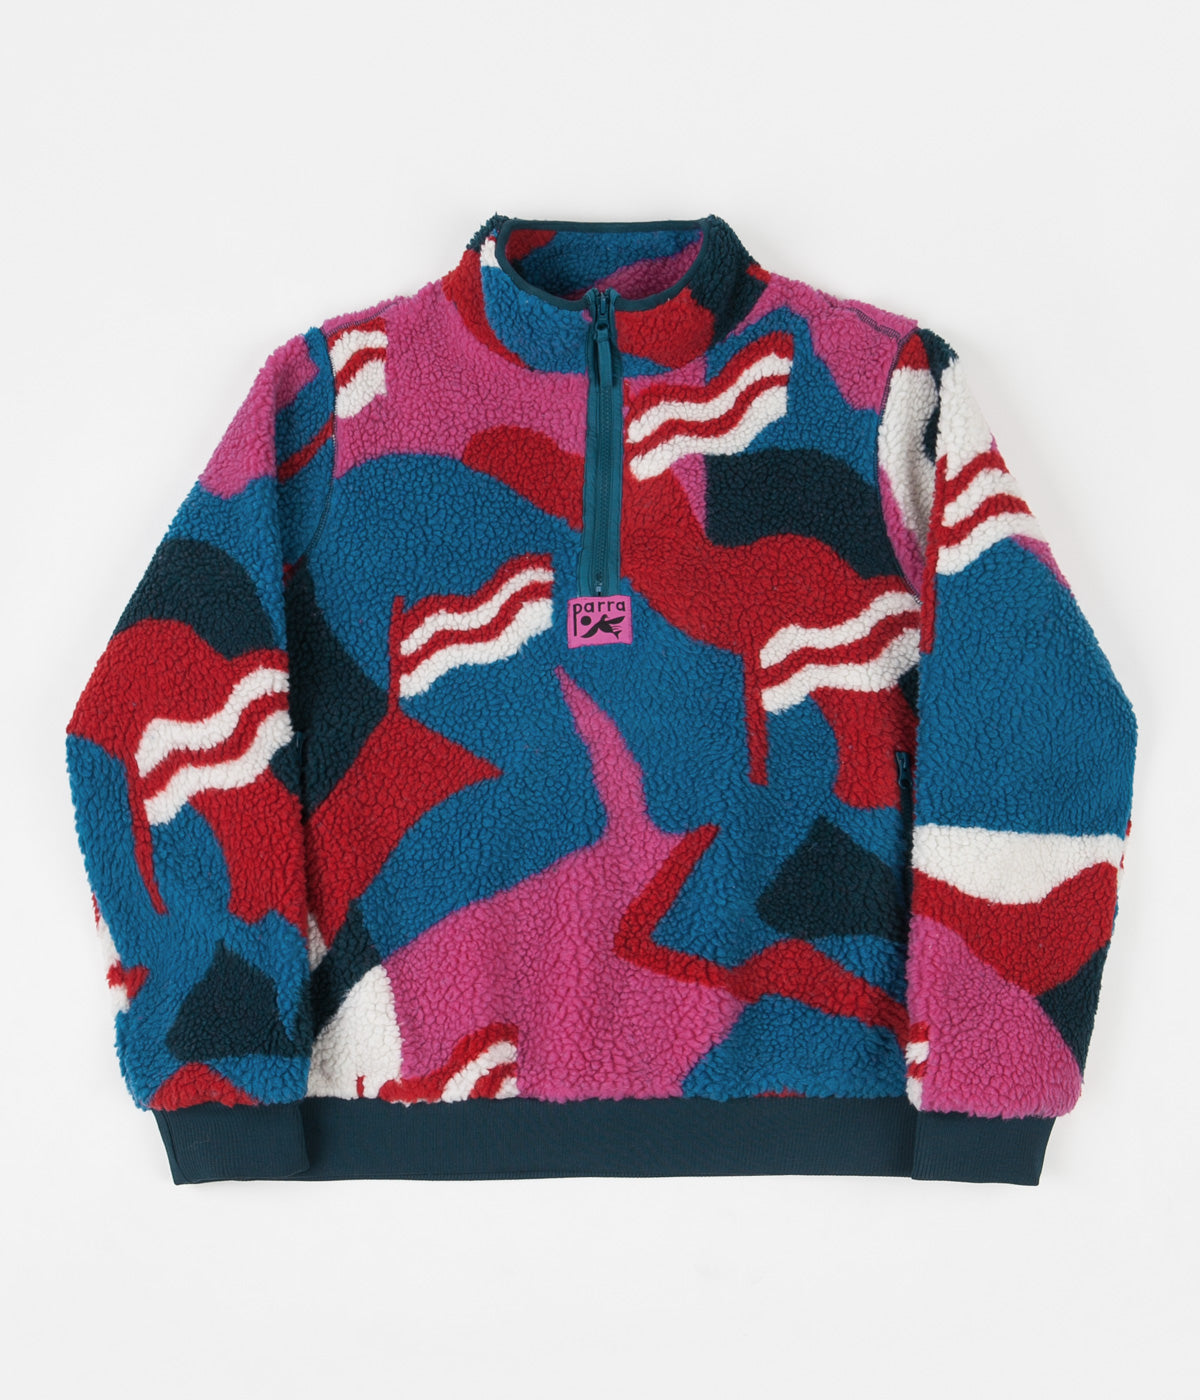 by Parra Flag Mountain Racer Sherpa Fleece - Multi